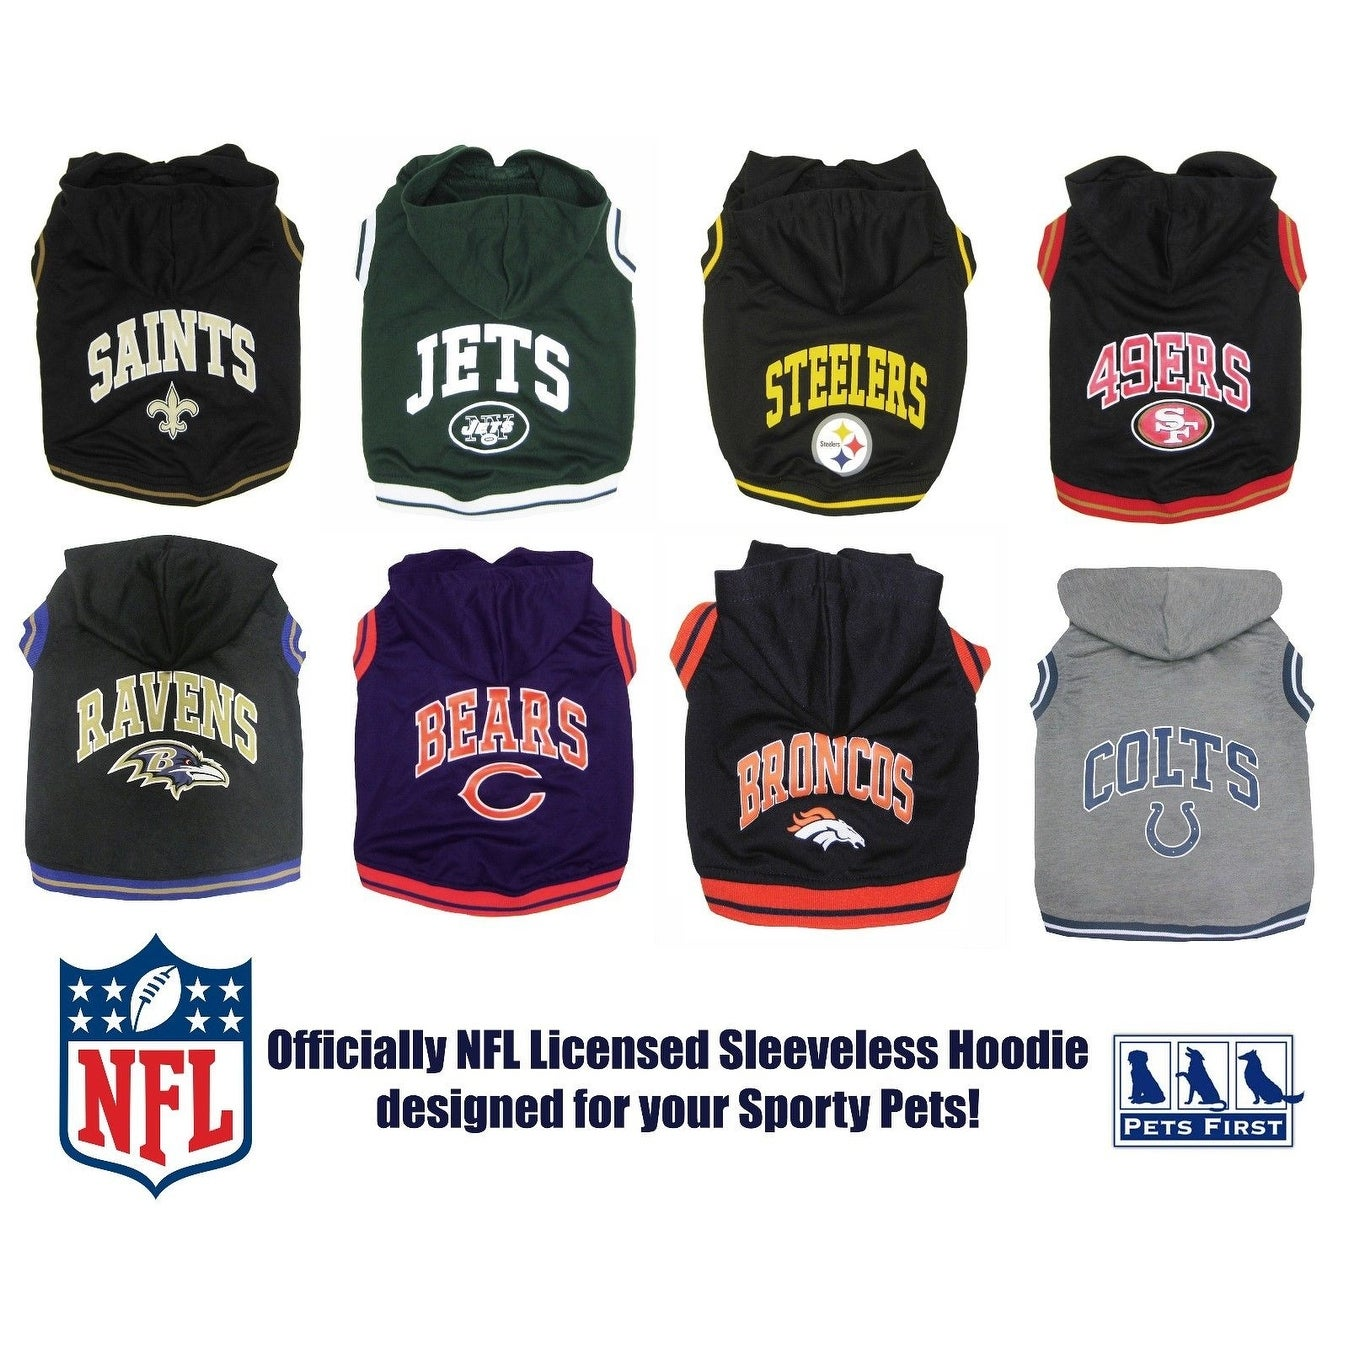 reputable site 11802 f65ab Pets First NFL Pet Sleeveless Hoodie Shirt - Licensed Sporty Hooded Shirt